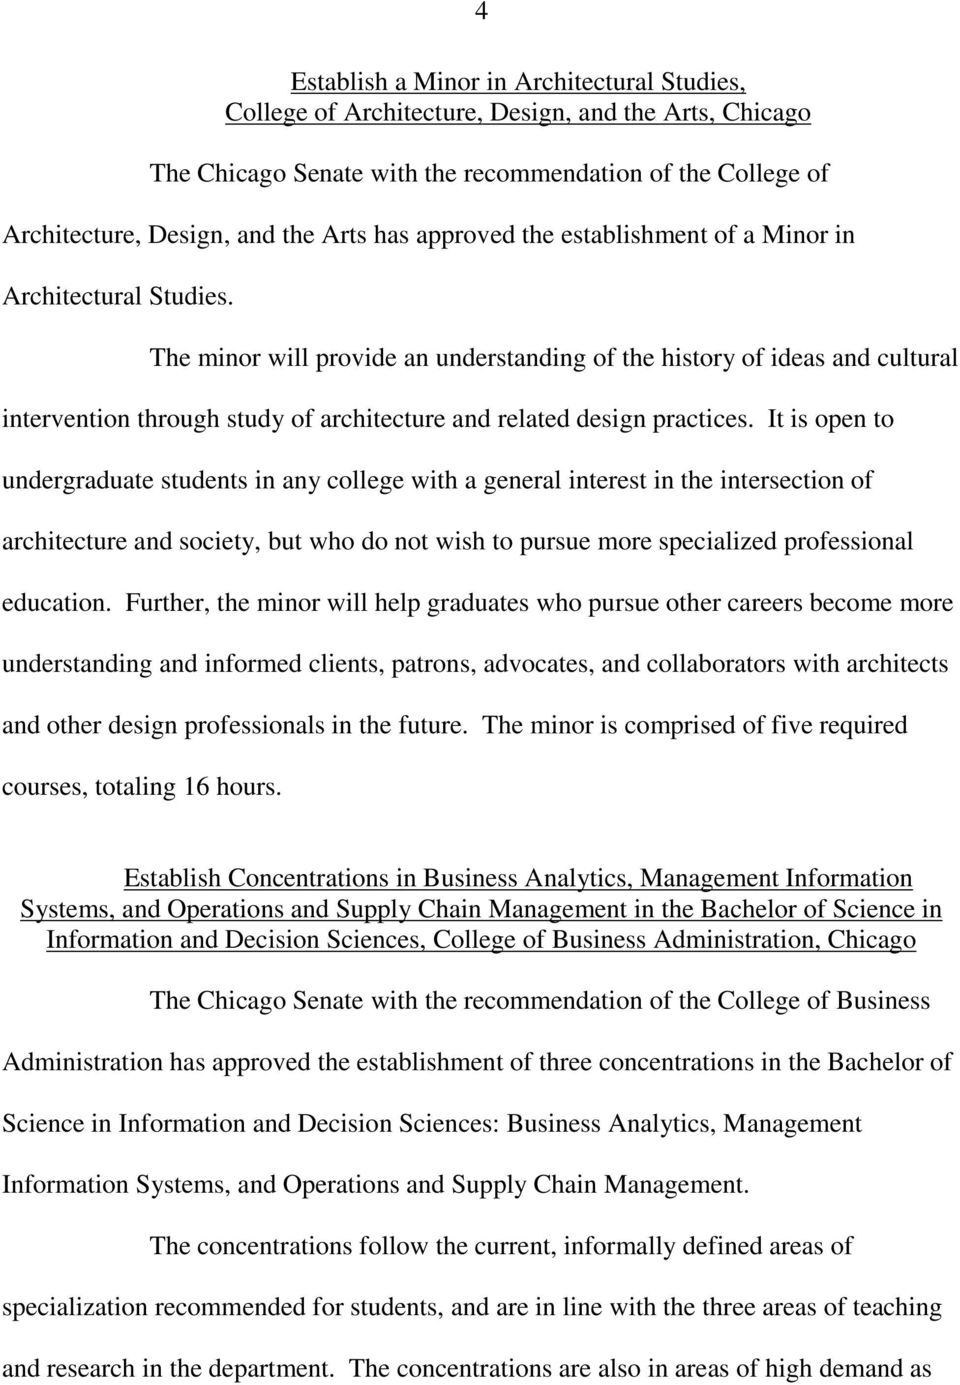 The minor will provide an understanding of the history of ideas and cultural intervention through study of architecture and related design practices.